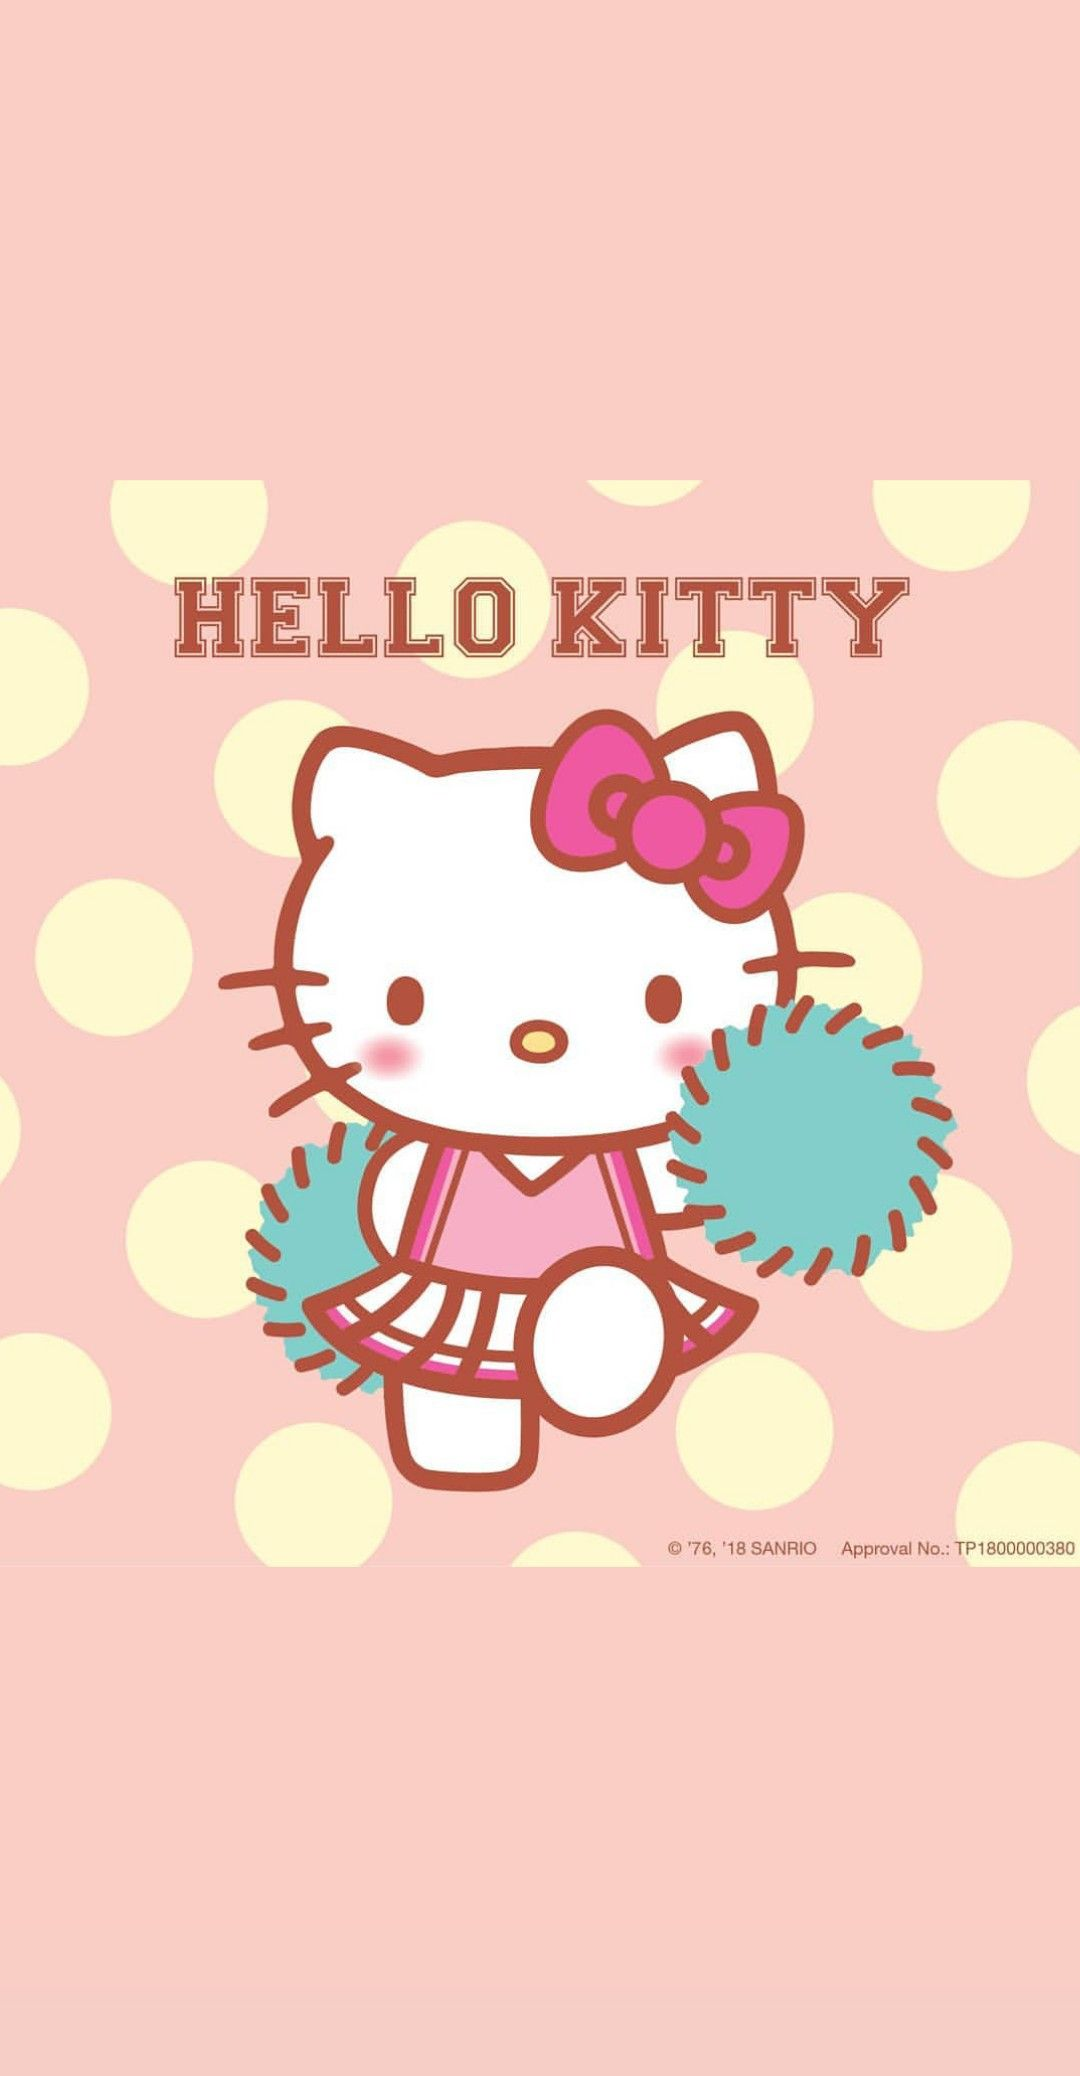 Hello Kitty | Обои для телефона, Обои